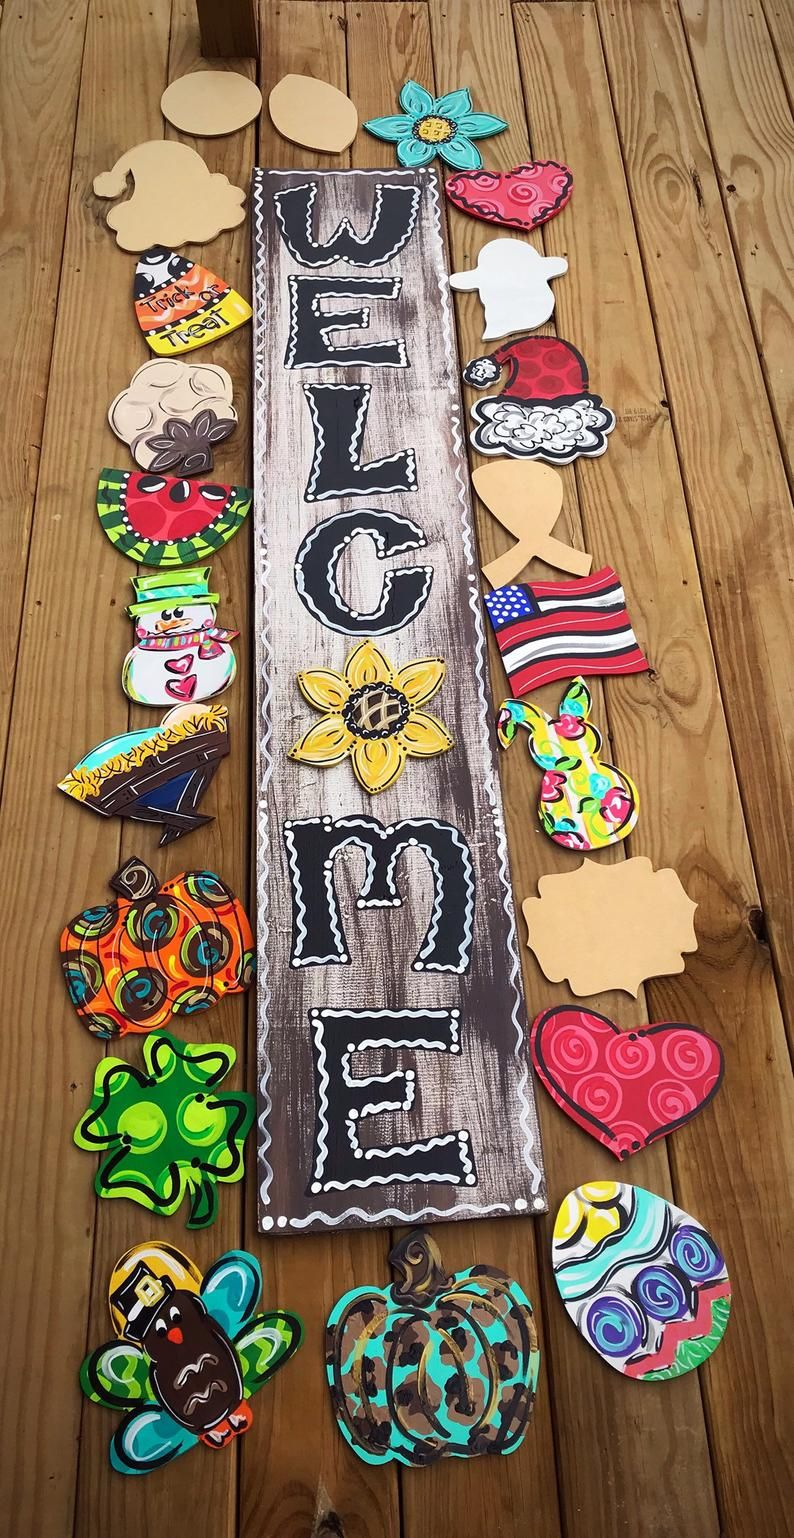 Welcome Sign Porch Leaner Attachments All Seasons Porch Etsy In 2020 Yard Art Crafts Porch Signs All Season Porch